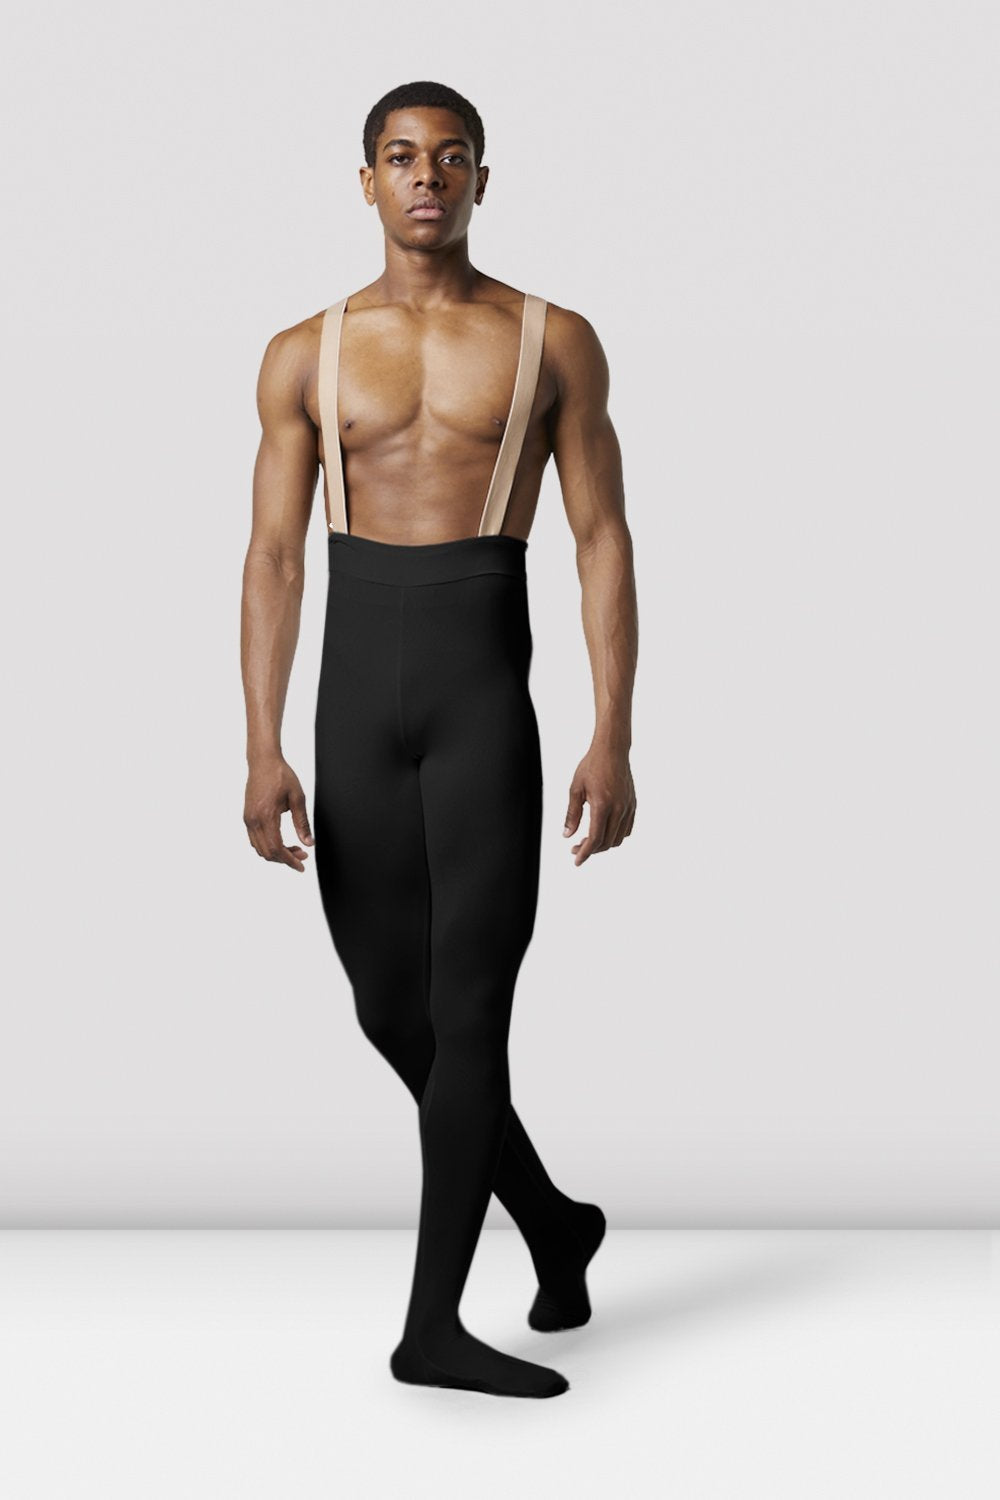 Black Bloch Mens Performance Footed Dance Tight on male model parallel feet with right foot en pointe with arms by side facing back